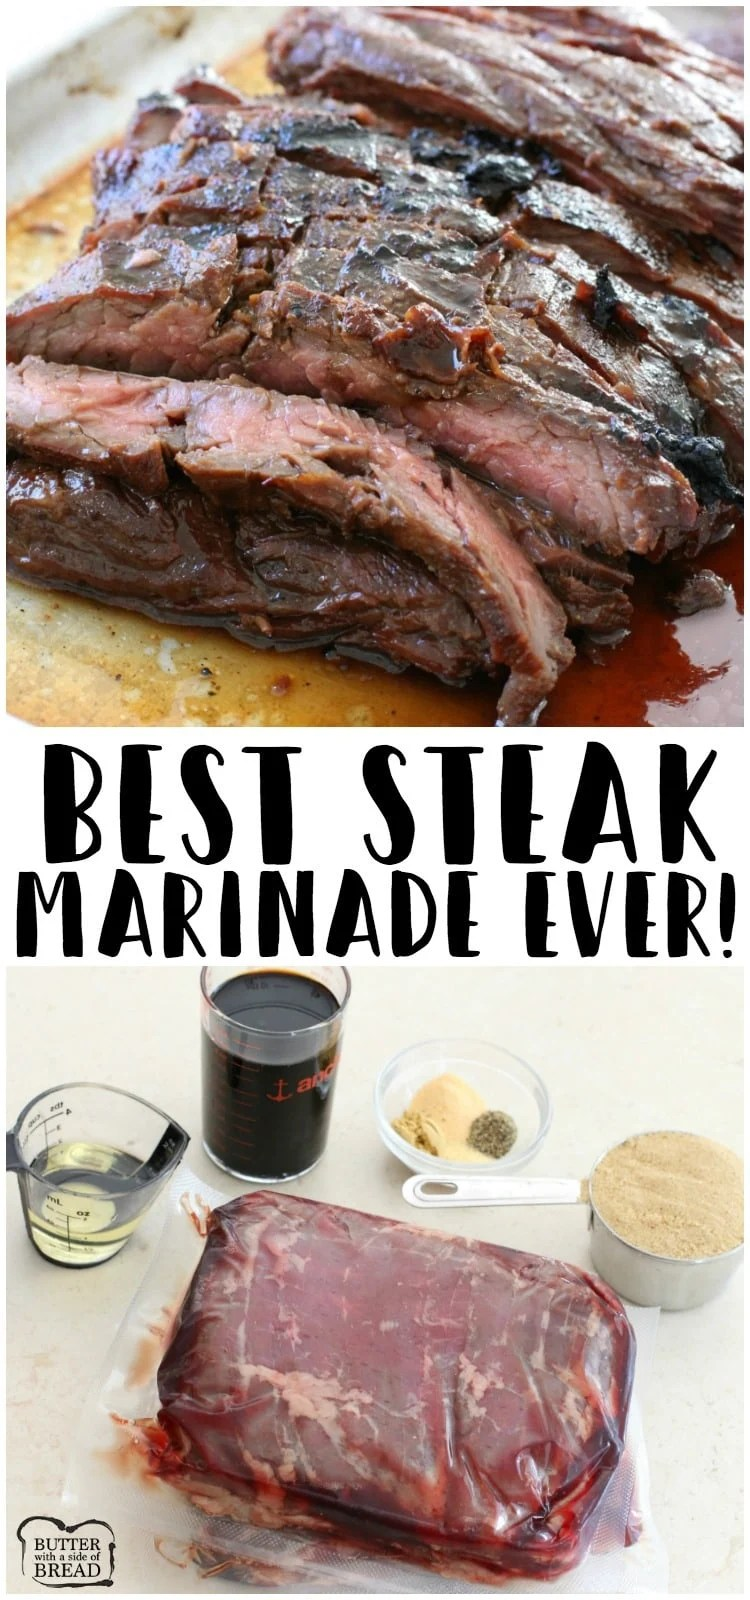 Steak marinade for the best steak of your life! Made with soy sauce, brown sugar, olive oil, ginger and garlic; you'll never taste a better steak marinade! Comes together in minutes and you won't believe the incredible flavor! Easy steak marinade recipe from Butter With A Side of Bread